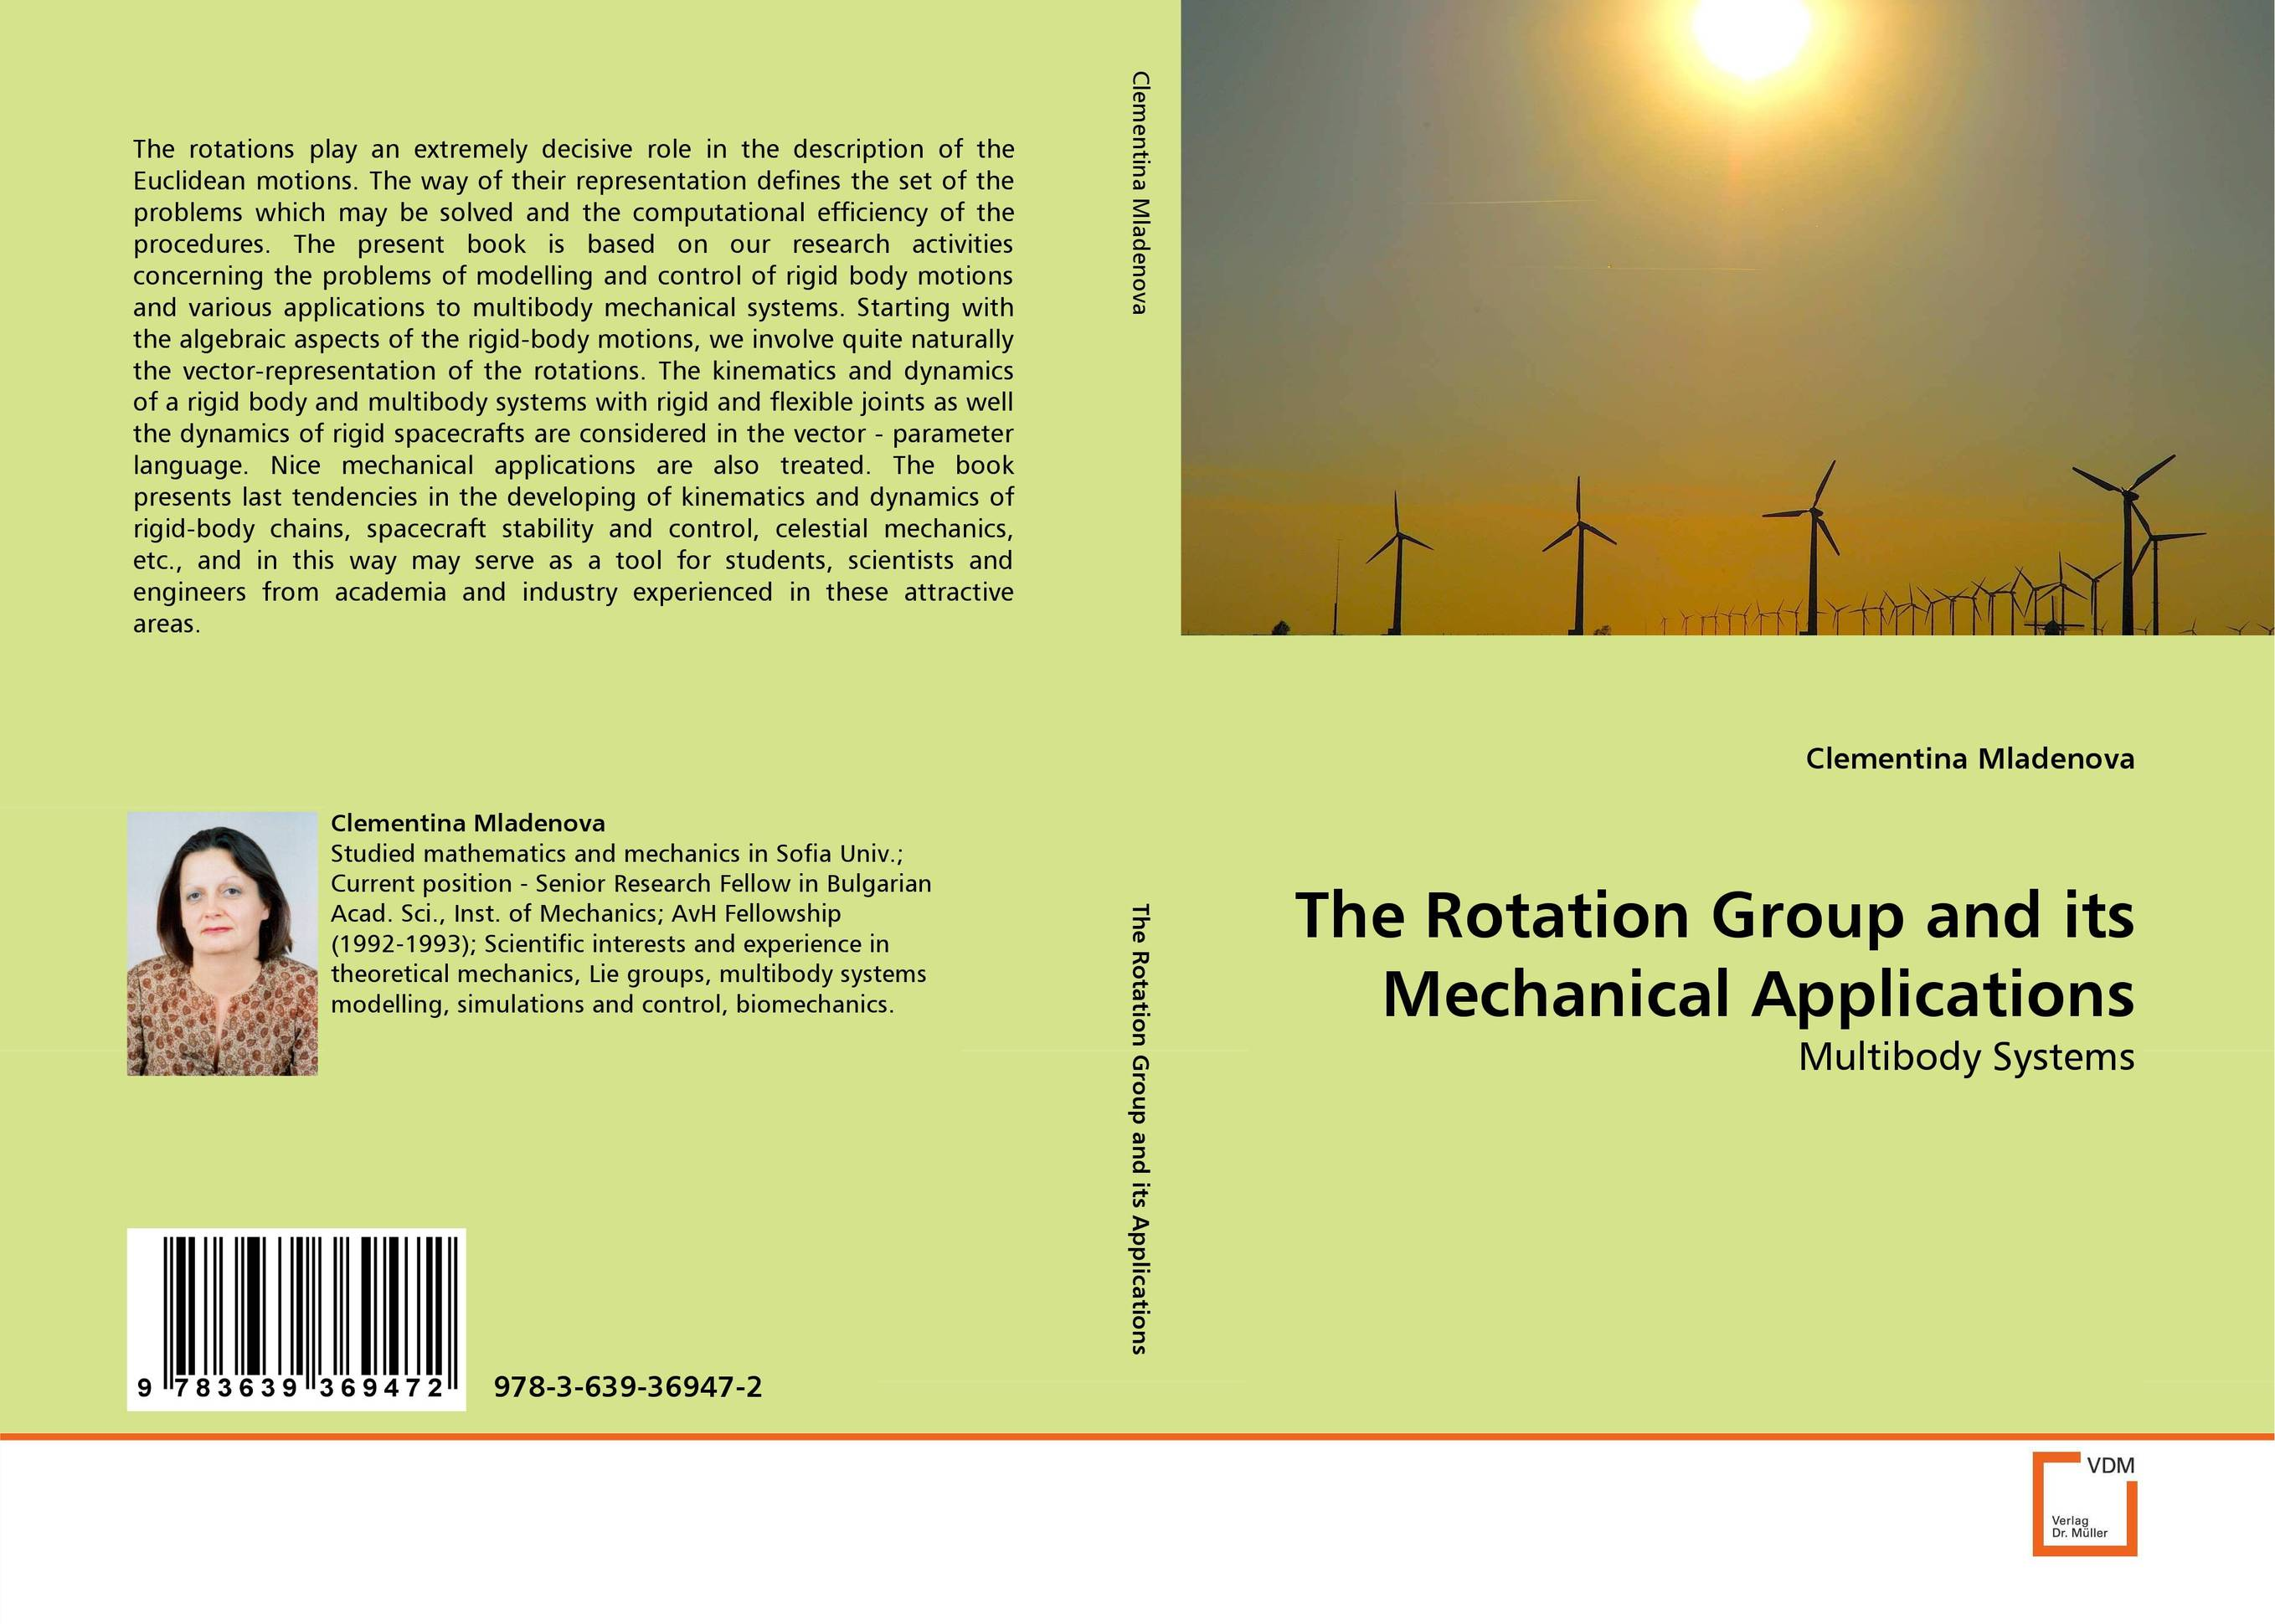 The Rotation Group and its Mechanical Applications